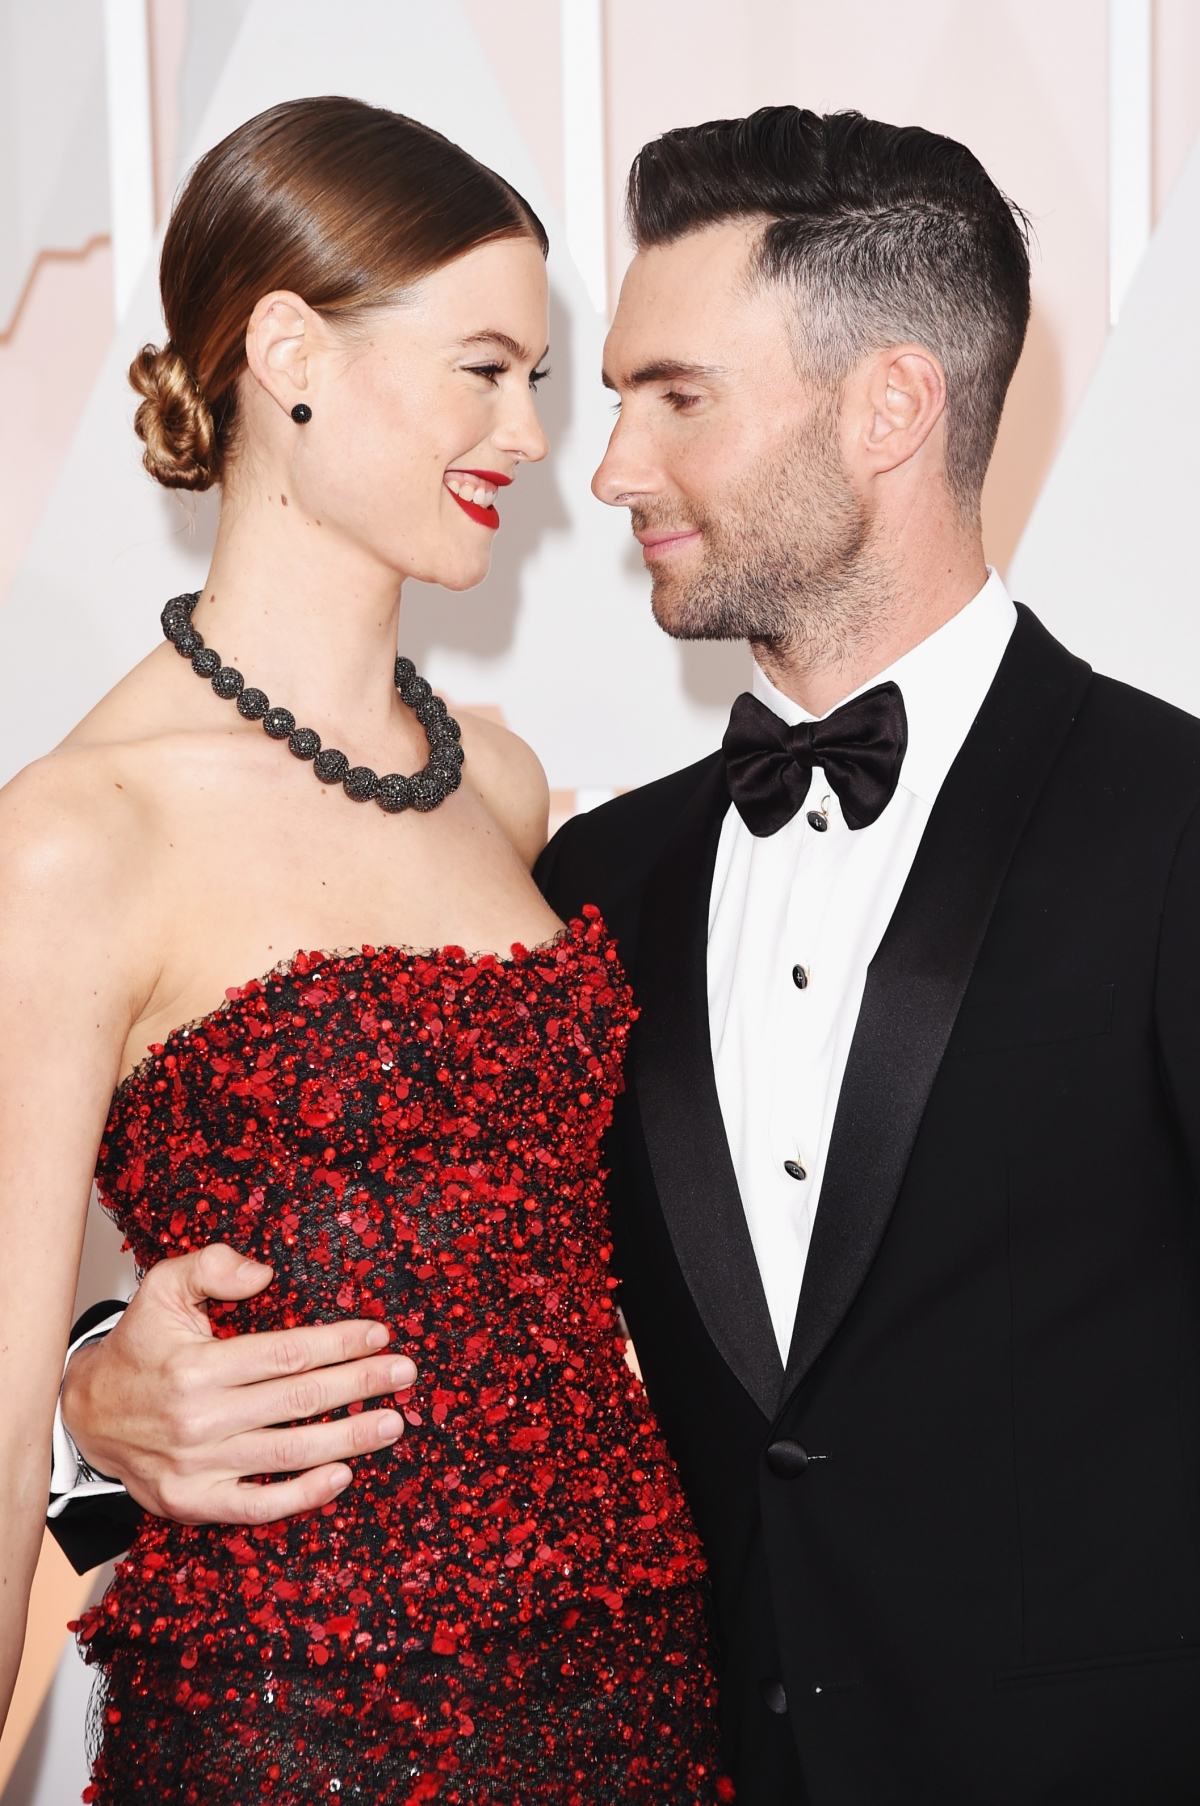 maroon five singer dating Adam levine reveals his dating secrets adam levine image by - photobucket ahhhh, that smile maroon 5 singer adam levine is working on another project with nbc.